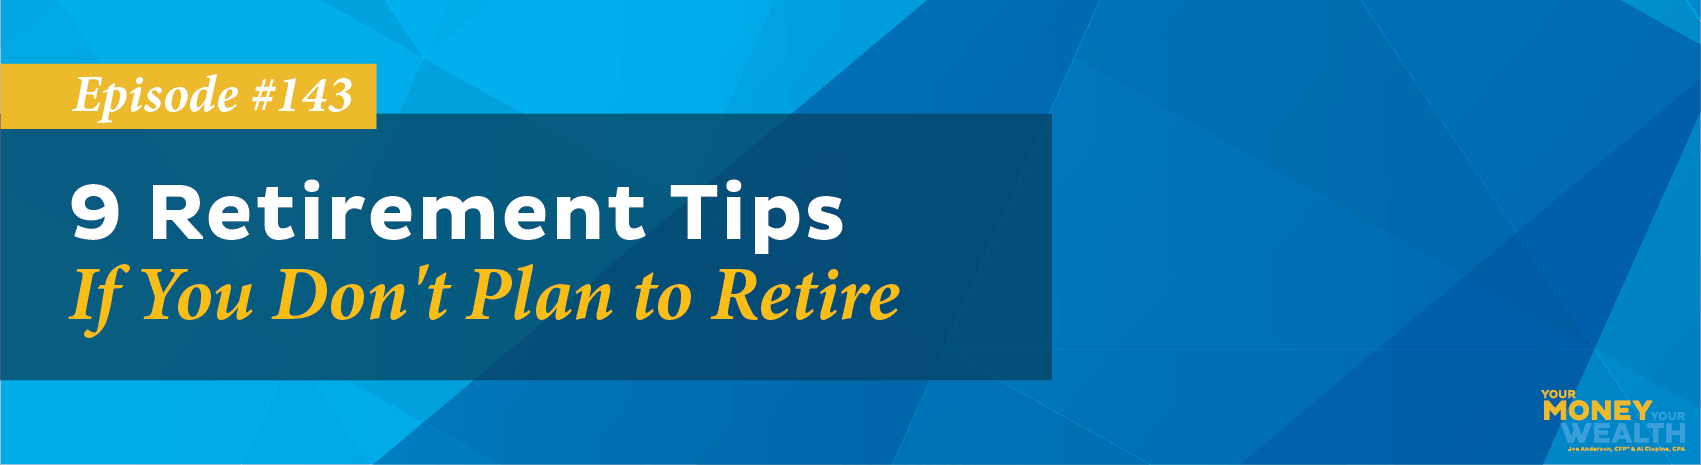 9 Retirement Tips If You Don't Plan To Retire